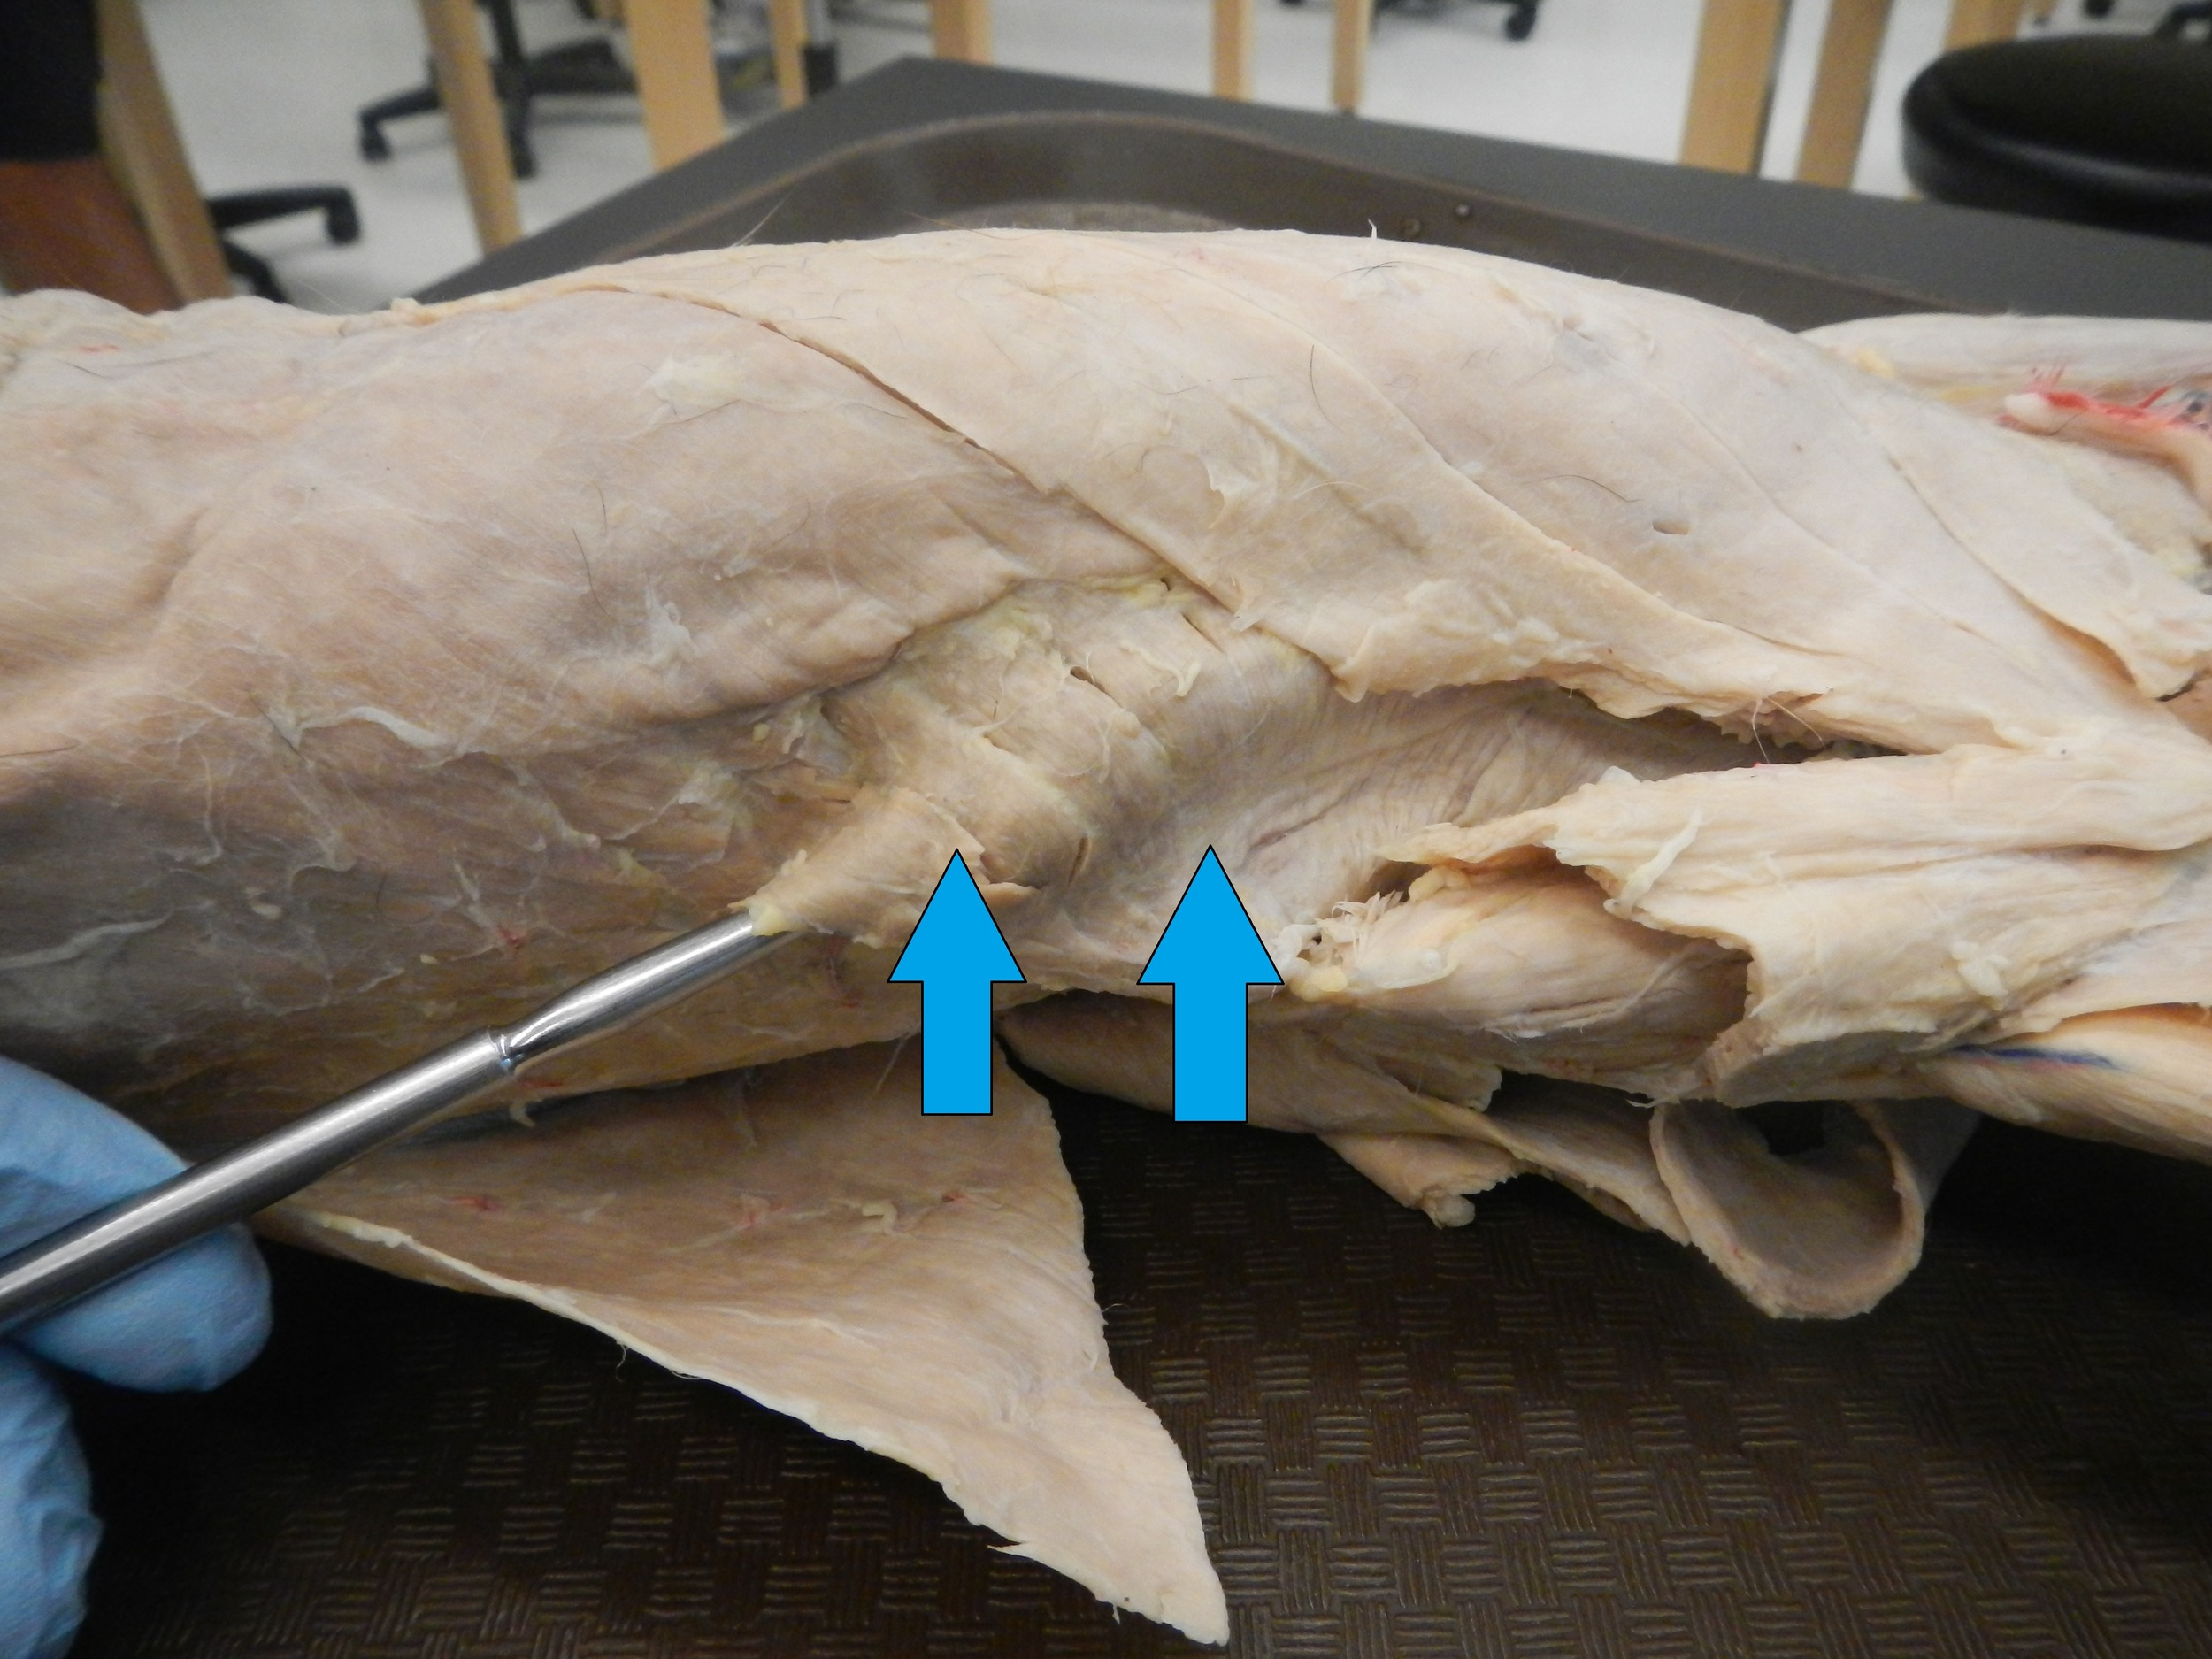 Serratus Anterior   O - Lateral surface of 8 upper ribs  I - Medial border and anterior surface of scapula  F - Abduction and superior rotation of scapula